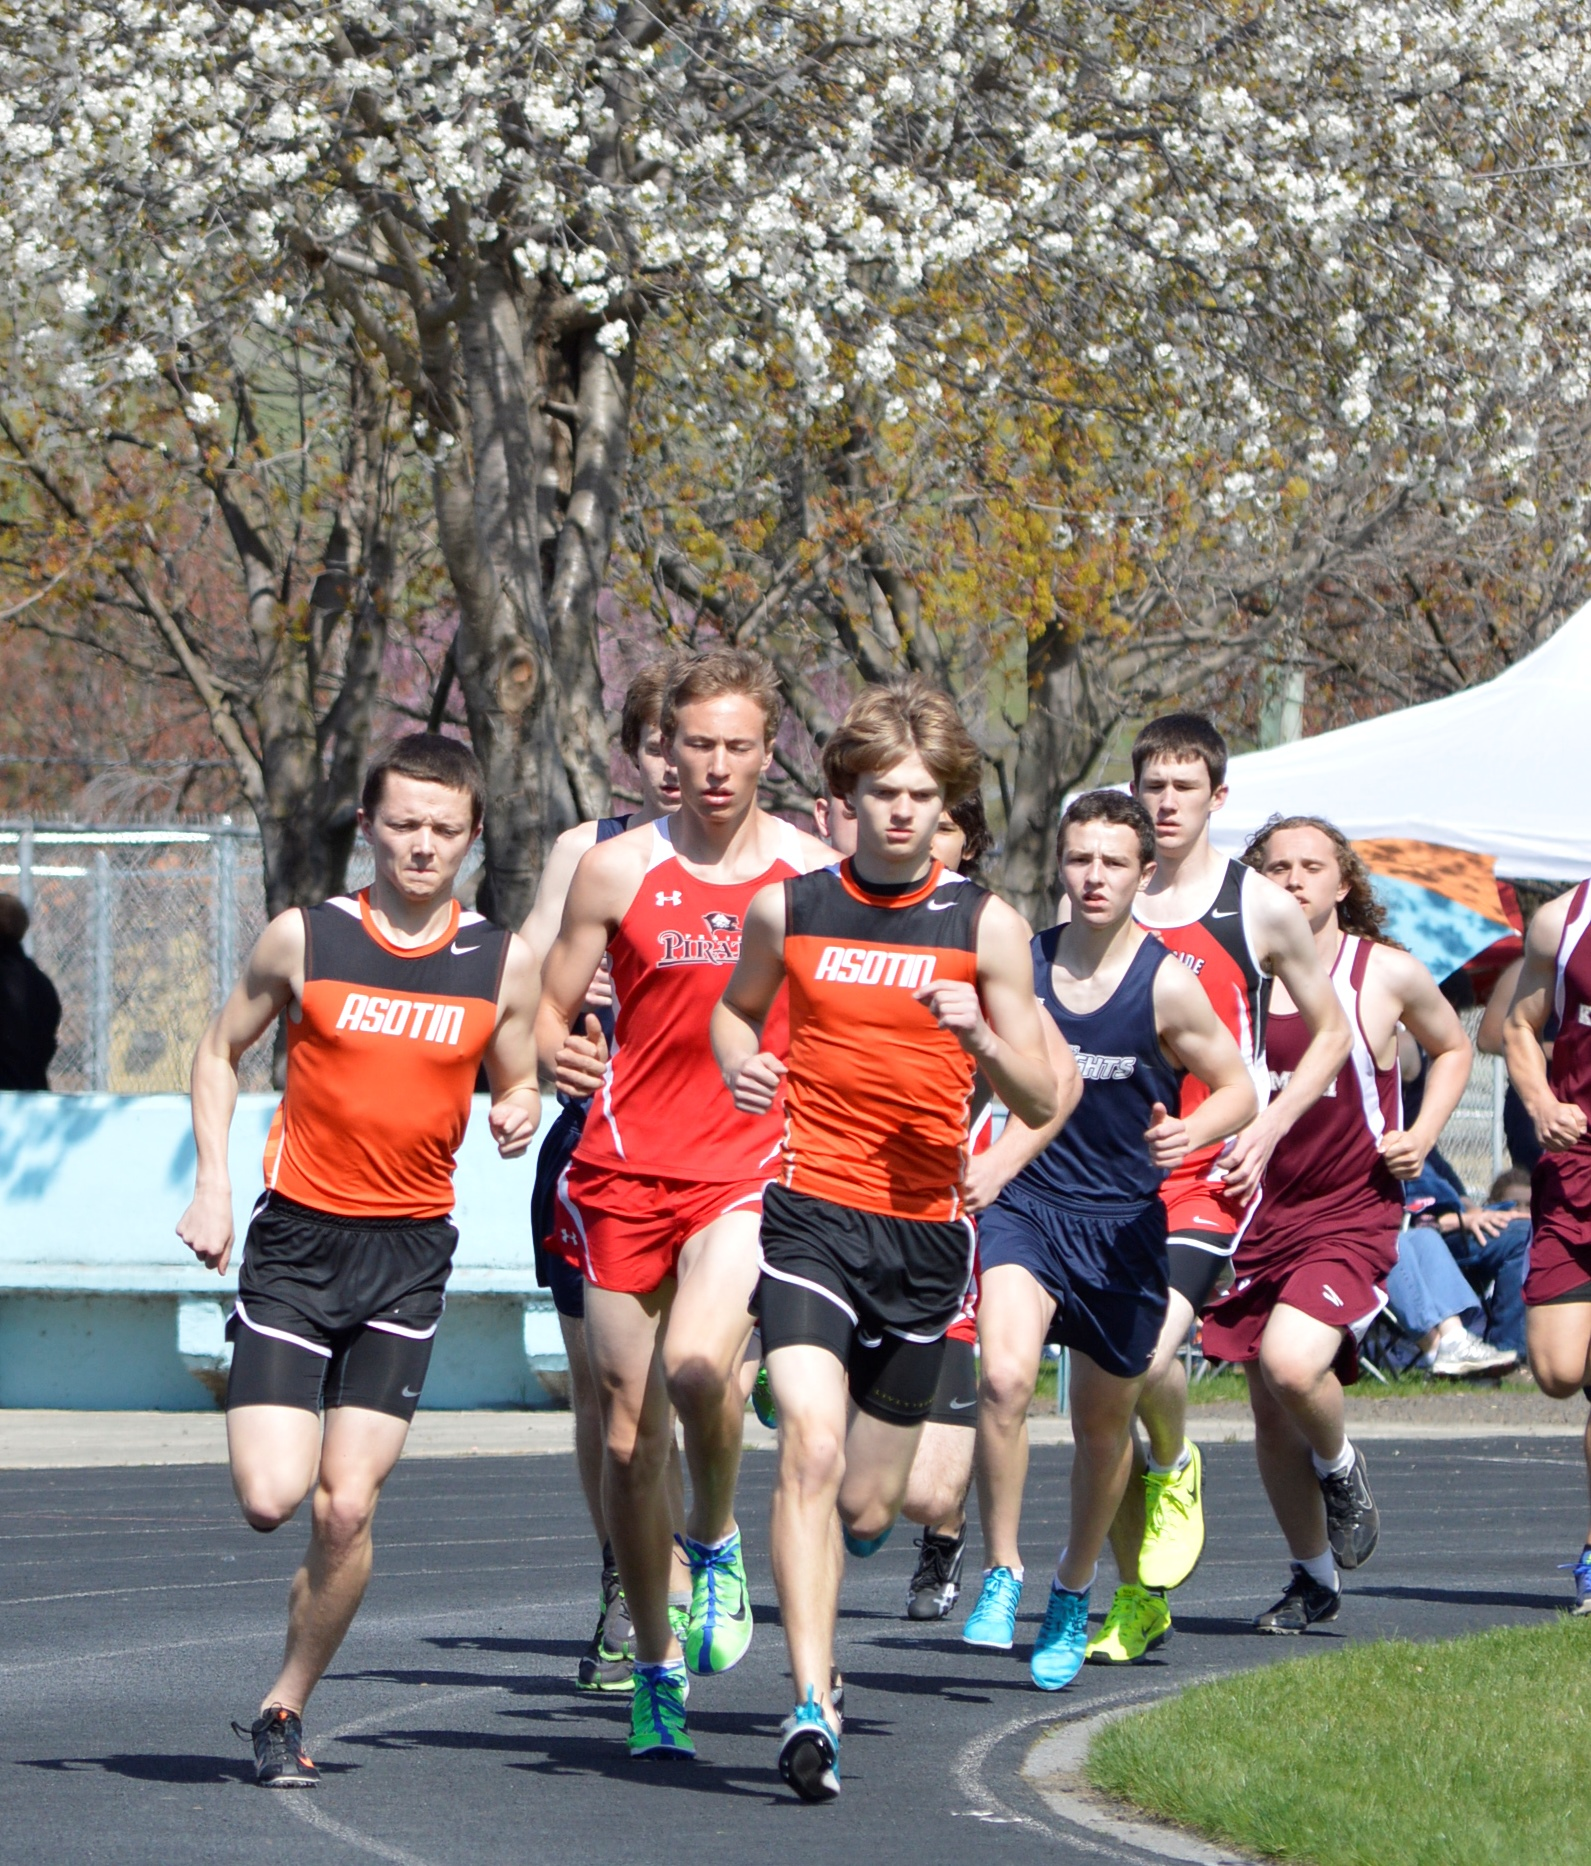 Thomas Weakland, Peter Spence, and Brady McKay lead the field out in the 3200M at the Border Wars Meet in Lapwai, Idaho.